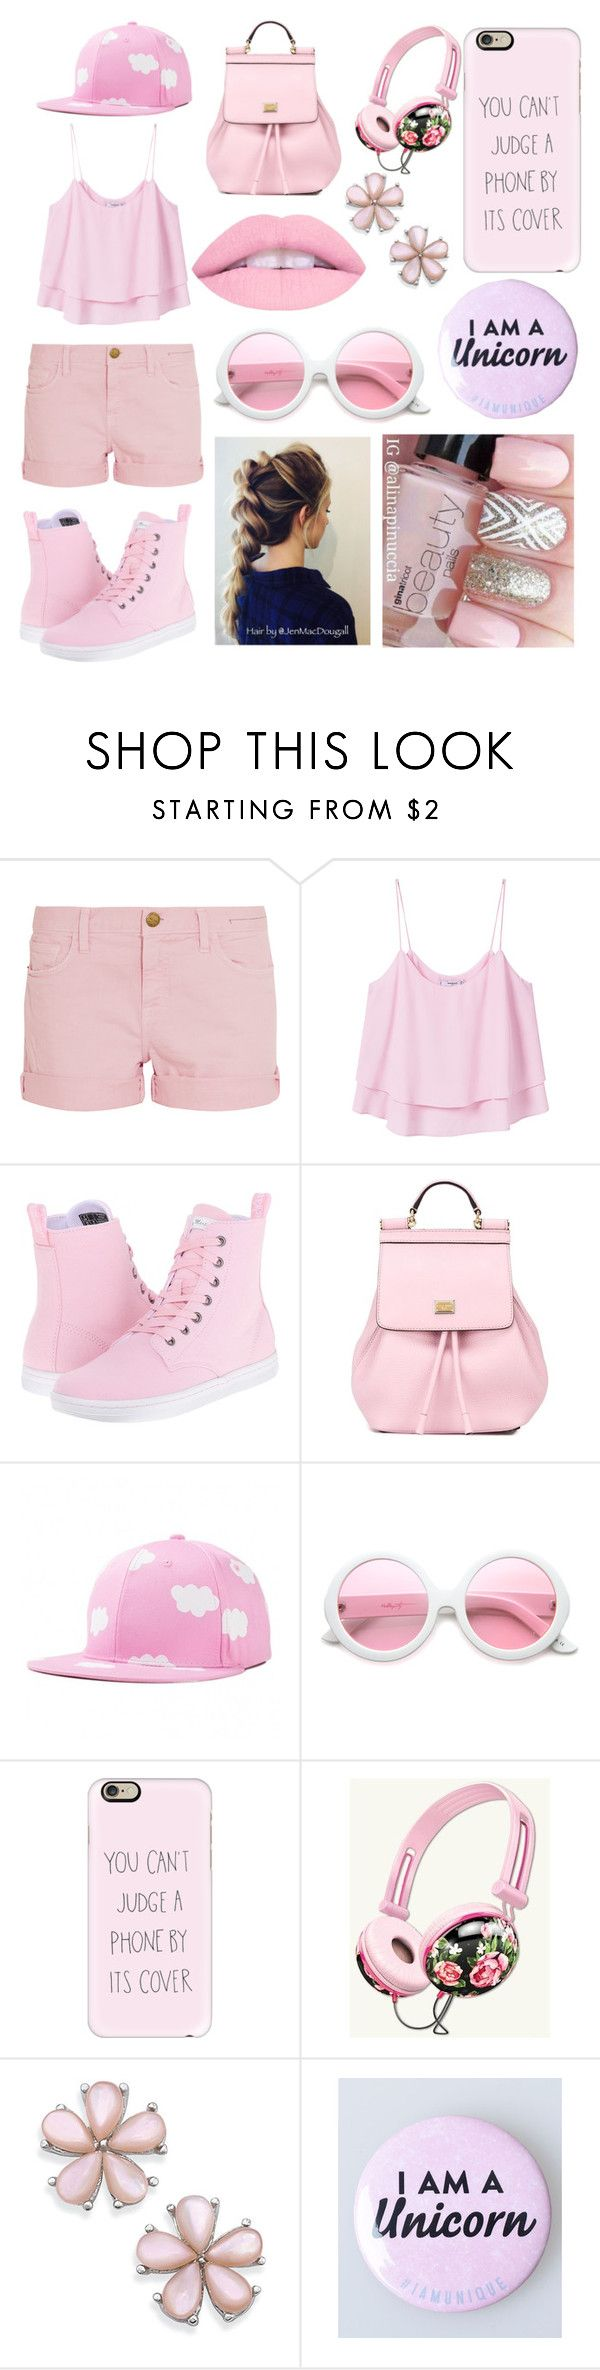 """14"" by cristina-vanau on Polyvore featuring Current/Elliott, MANGO, Dr. Martens, Dolce&Gabbana, ZeroUV and Casetify"